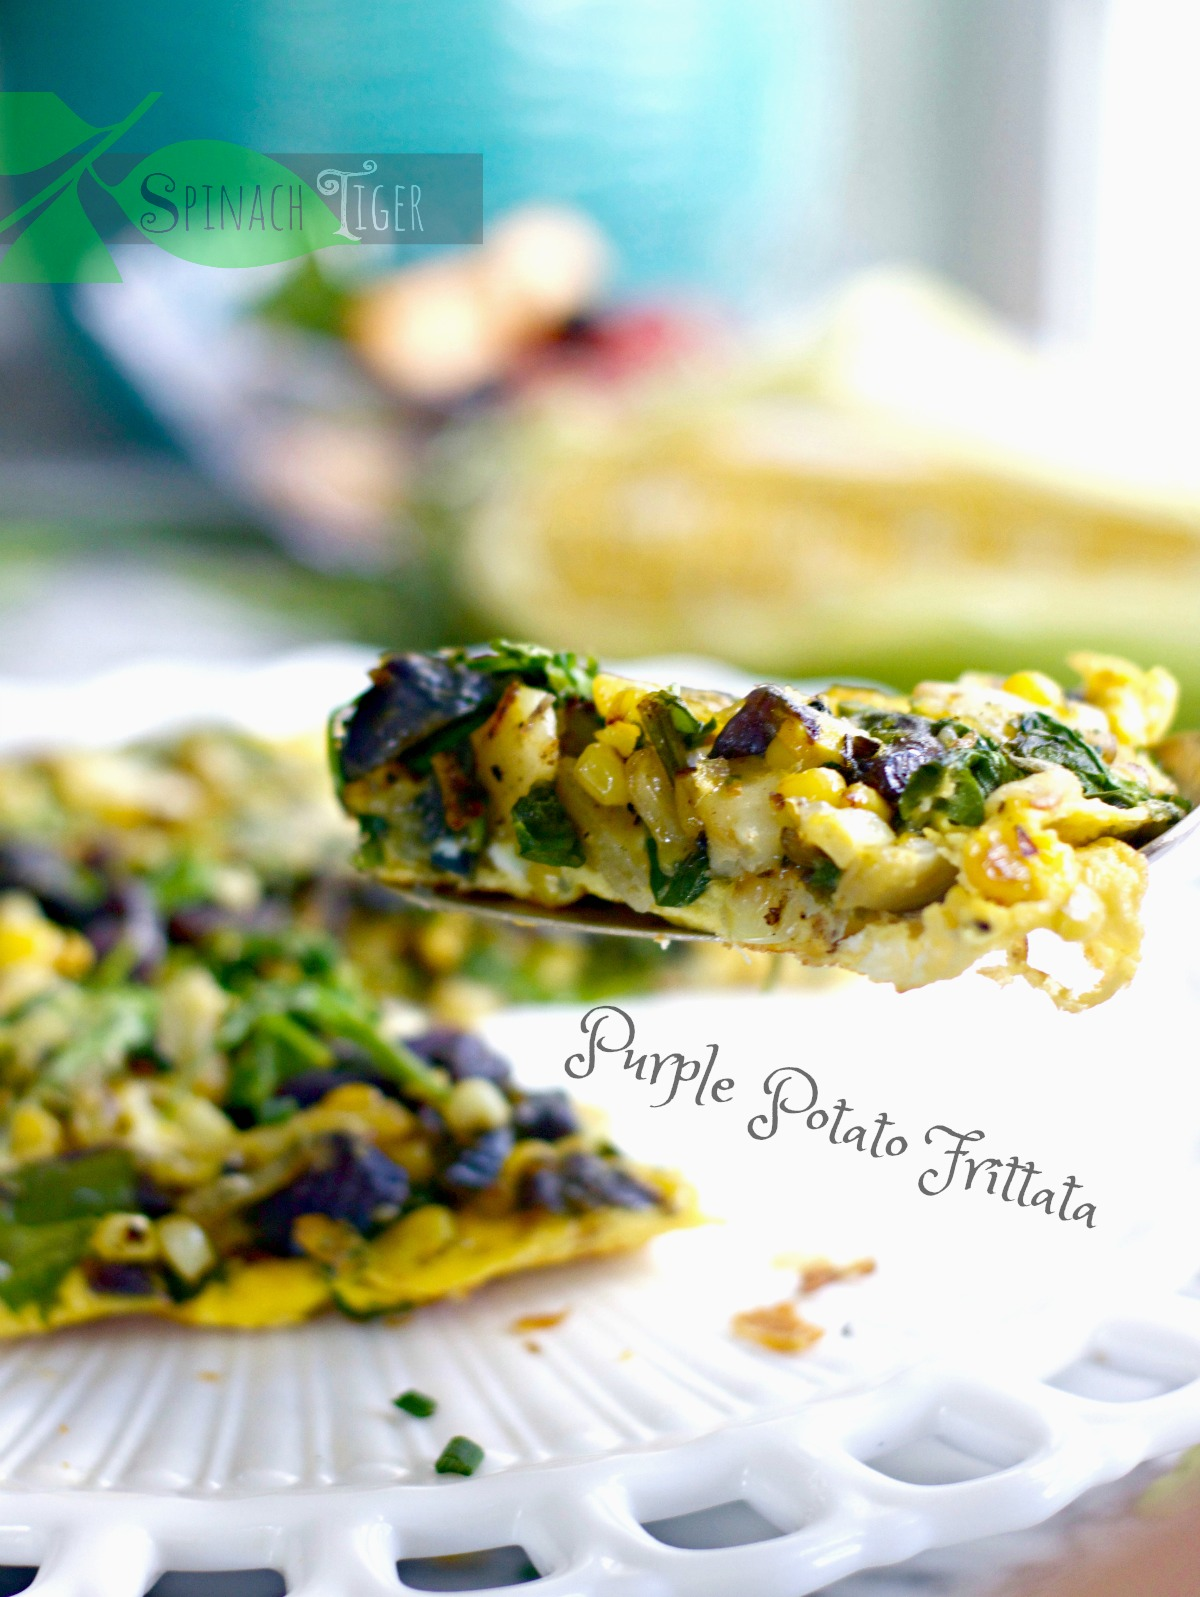 Healthy Frittata with Purple Potatoes From Spinach Tiger